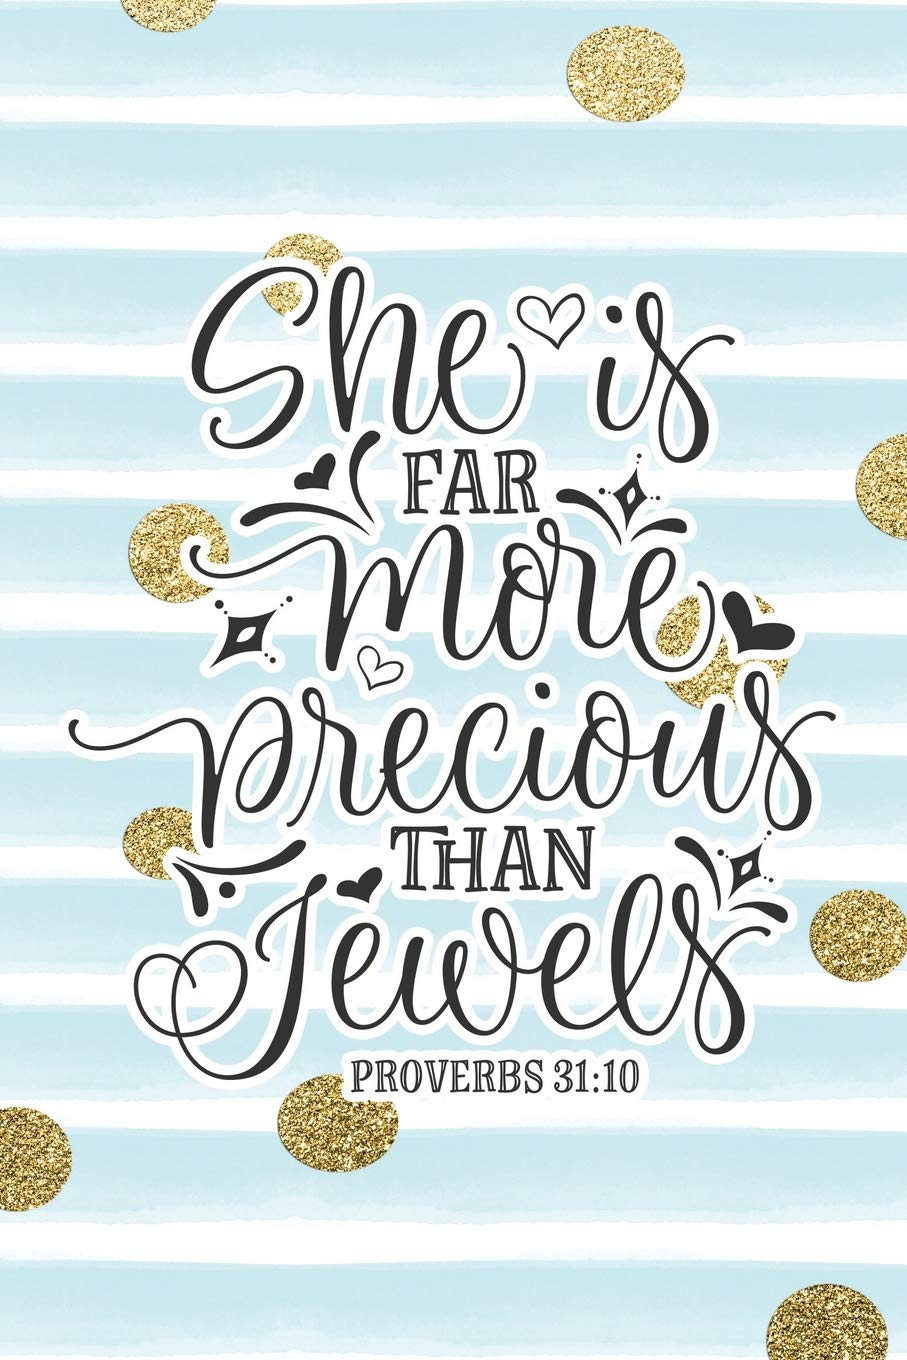 She Is Far More Precious Than Jewels Proverbs 31:10: Bible